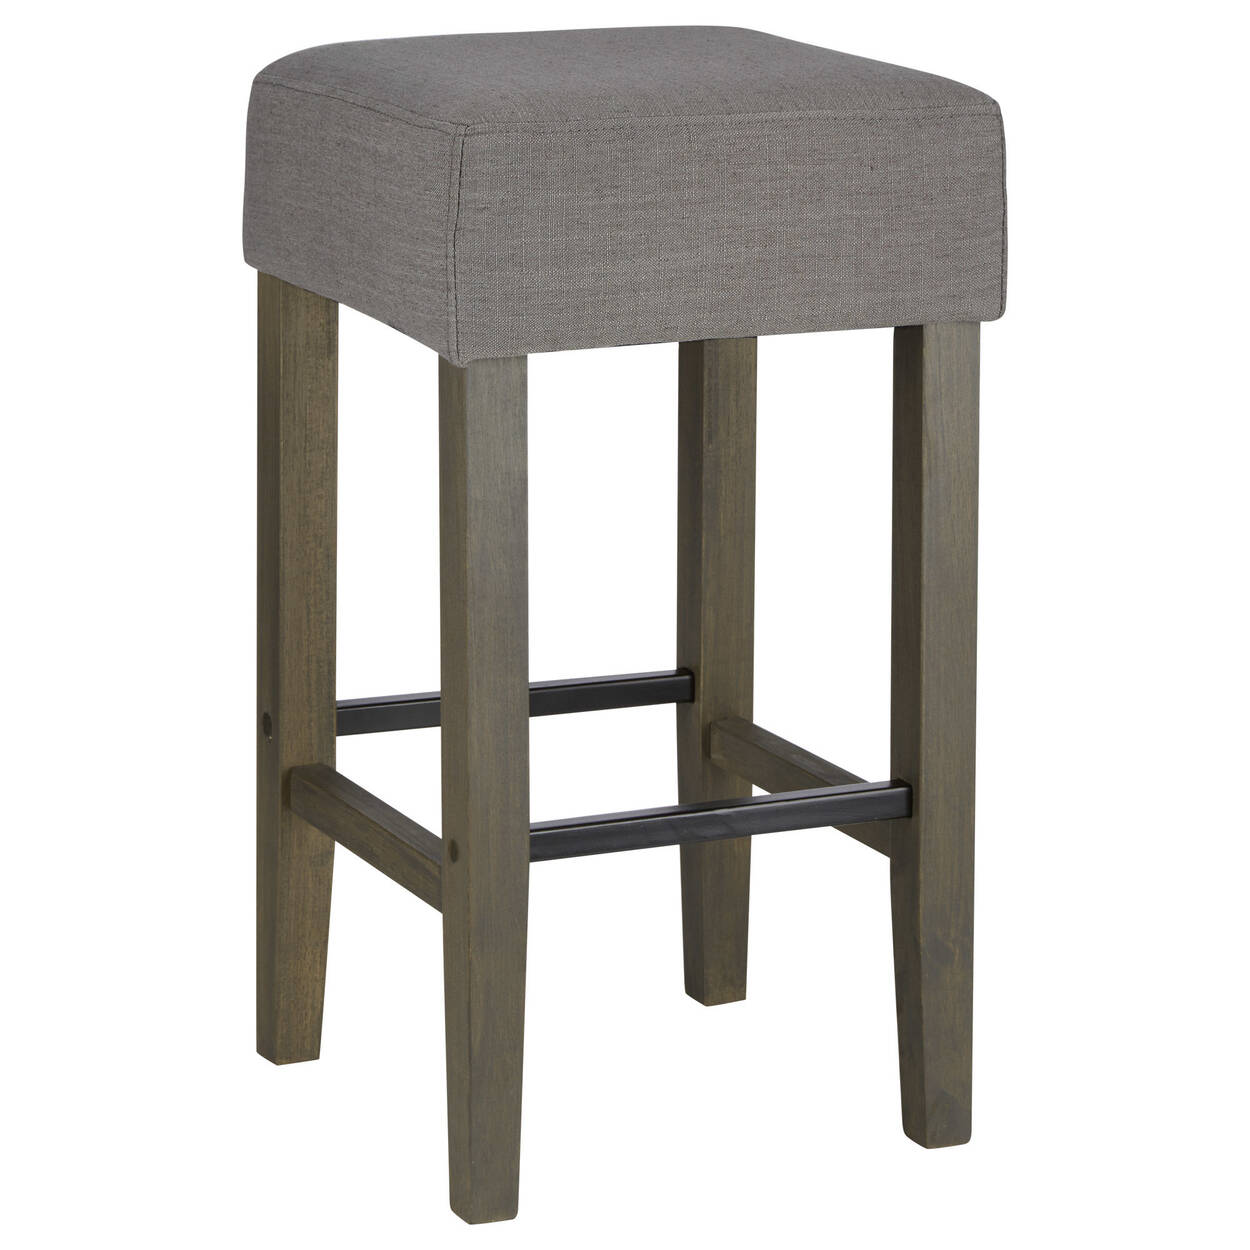 tabouret de bar en tissu et en bois. Black Bedroom Furniture Sets. Home Design Ideas